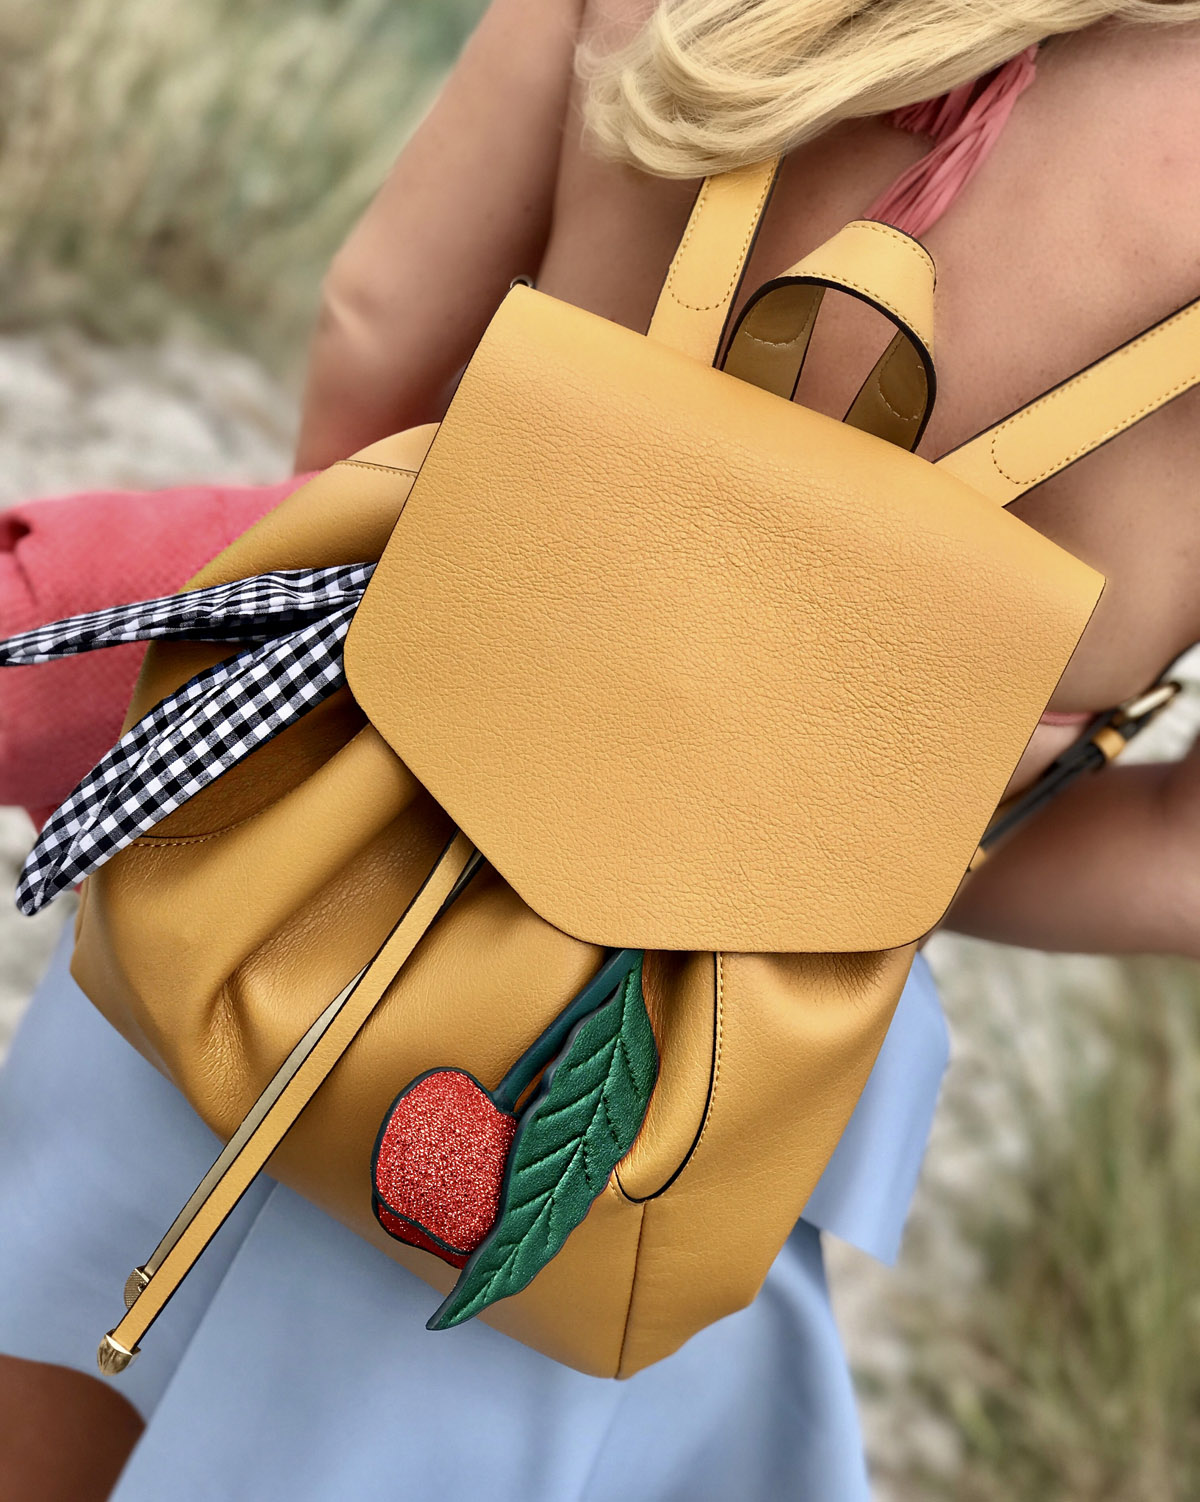 cherry-backpack-brauner-rucksack-beach-outfit-stockholm-strand